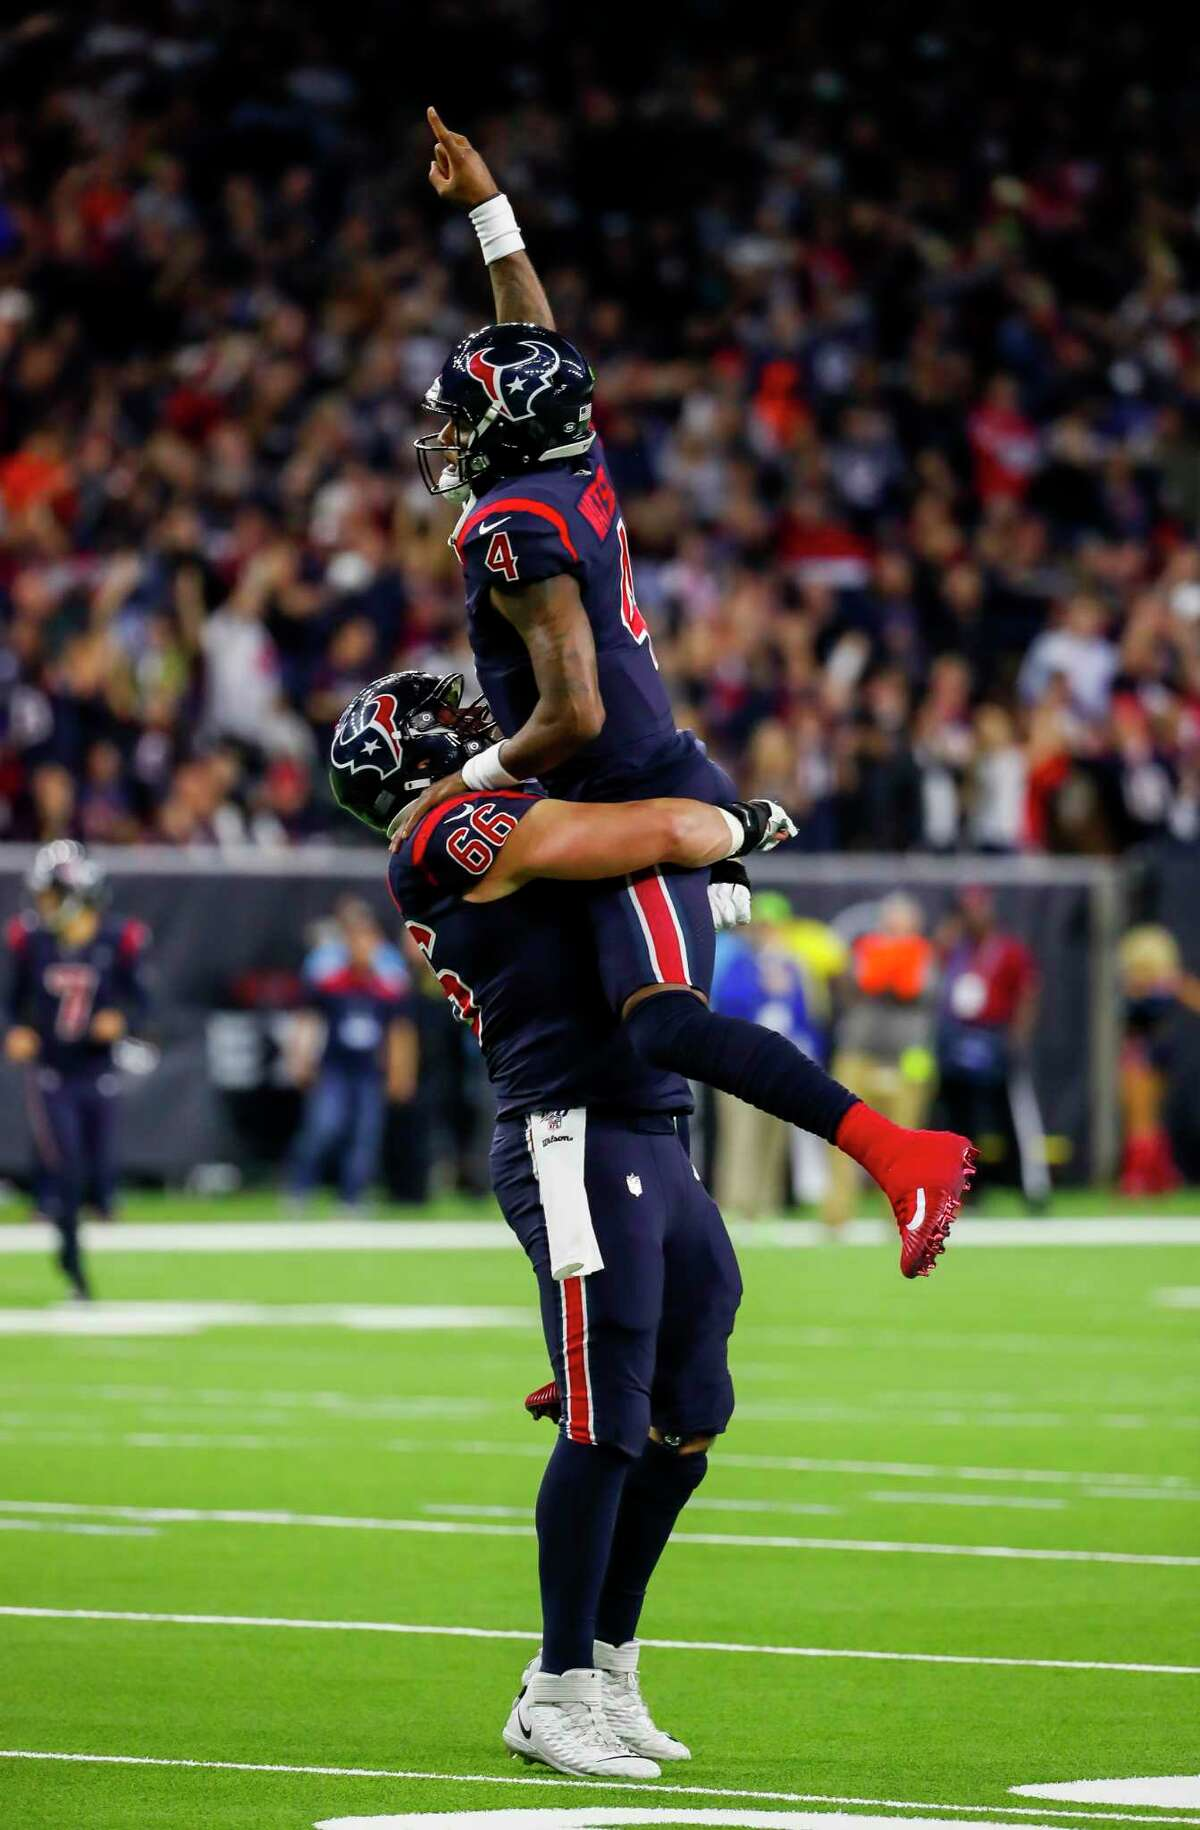 Houston Texans quarterback Deshaun Watson (4) and Houston Texans center Nick Martin (66) celebrate after Watson threw a 13-yard touchdown pass to Houston Texans tight end Darren Fells (87) during the second quarter of an NFL football game at NRG Stadium on Sunday, Dec. 1, 2019, in Houston.